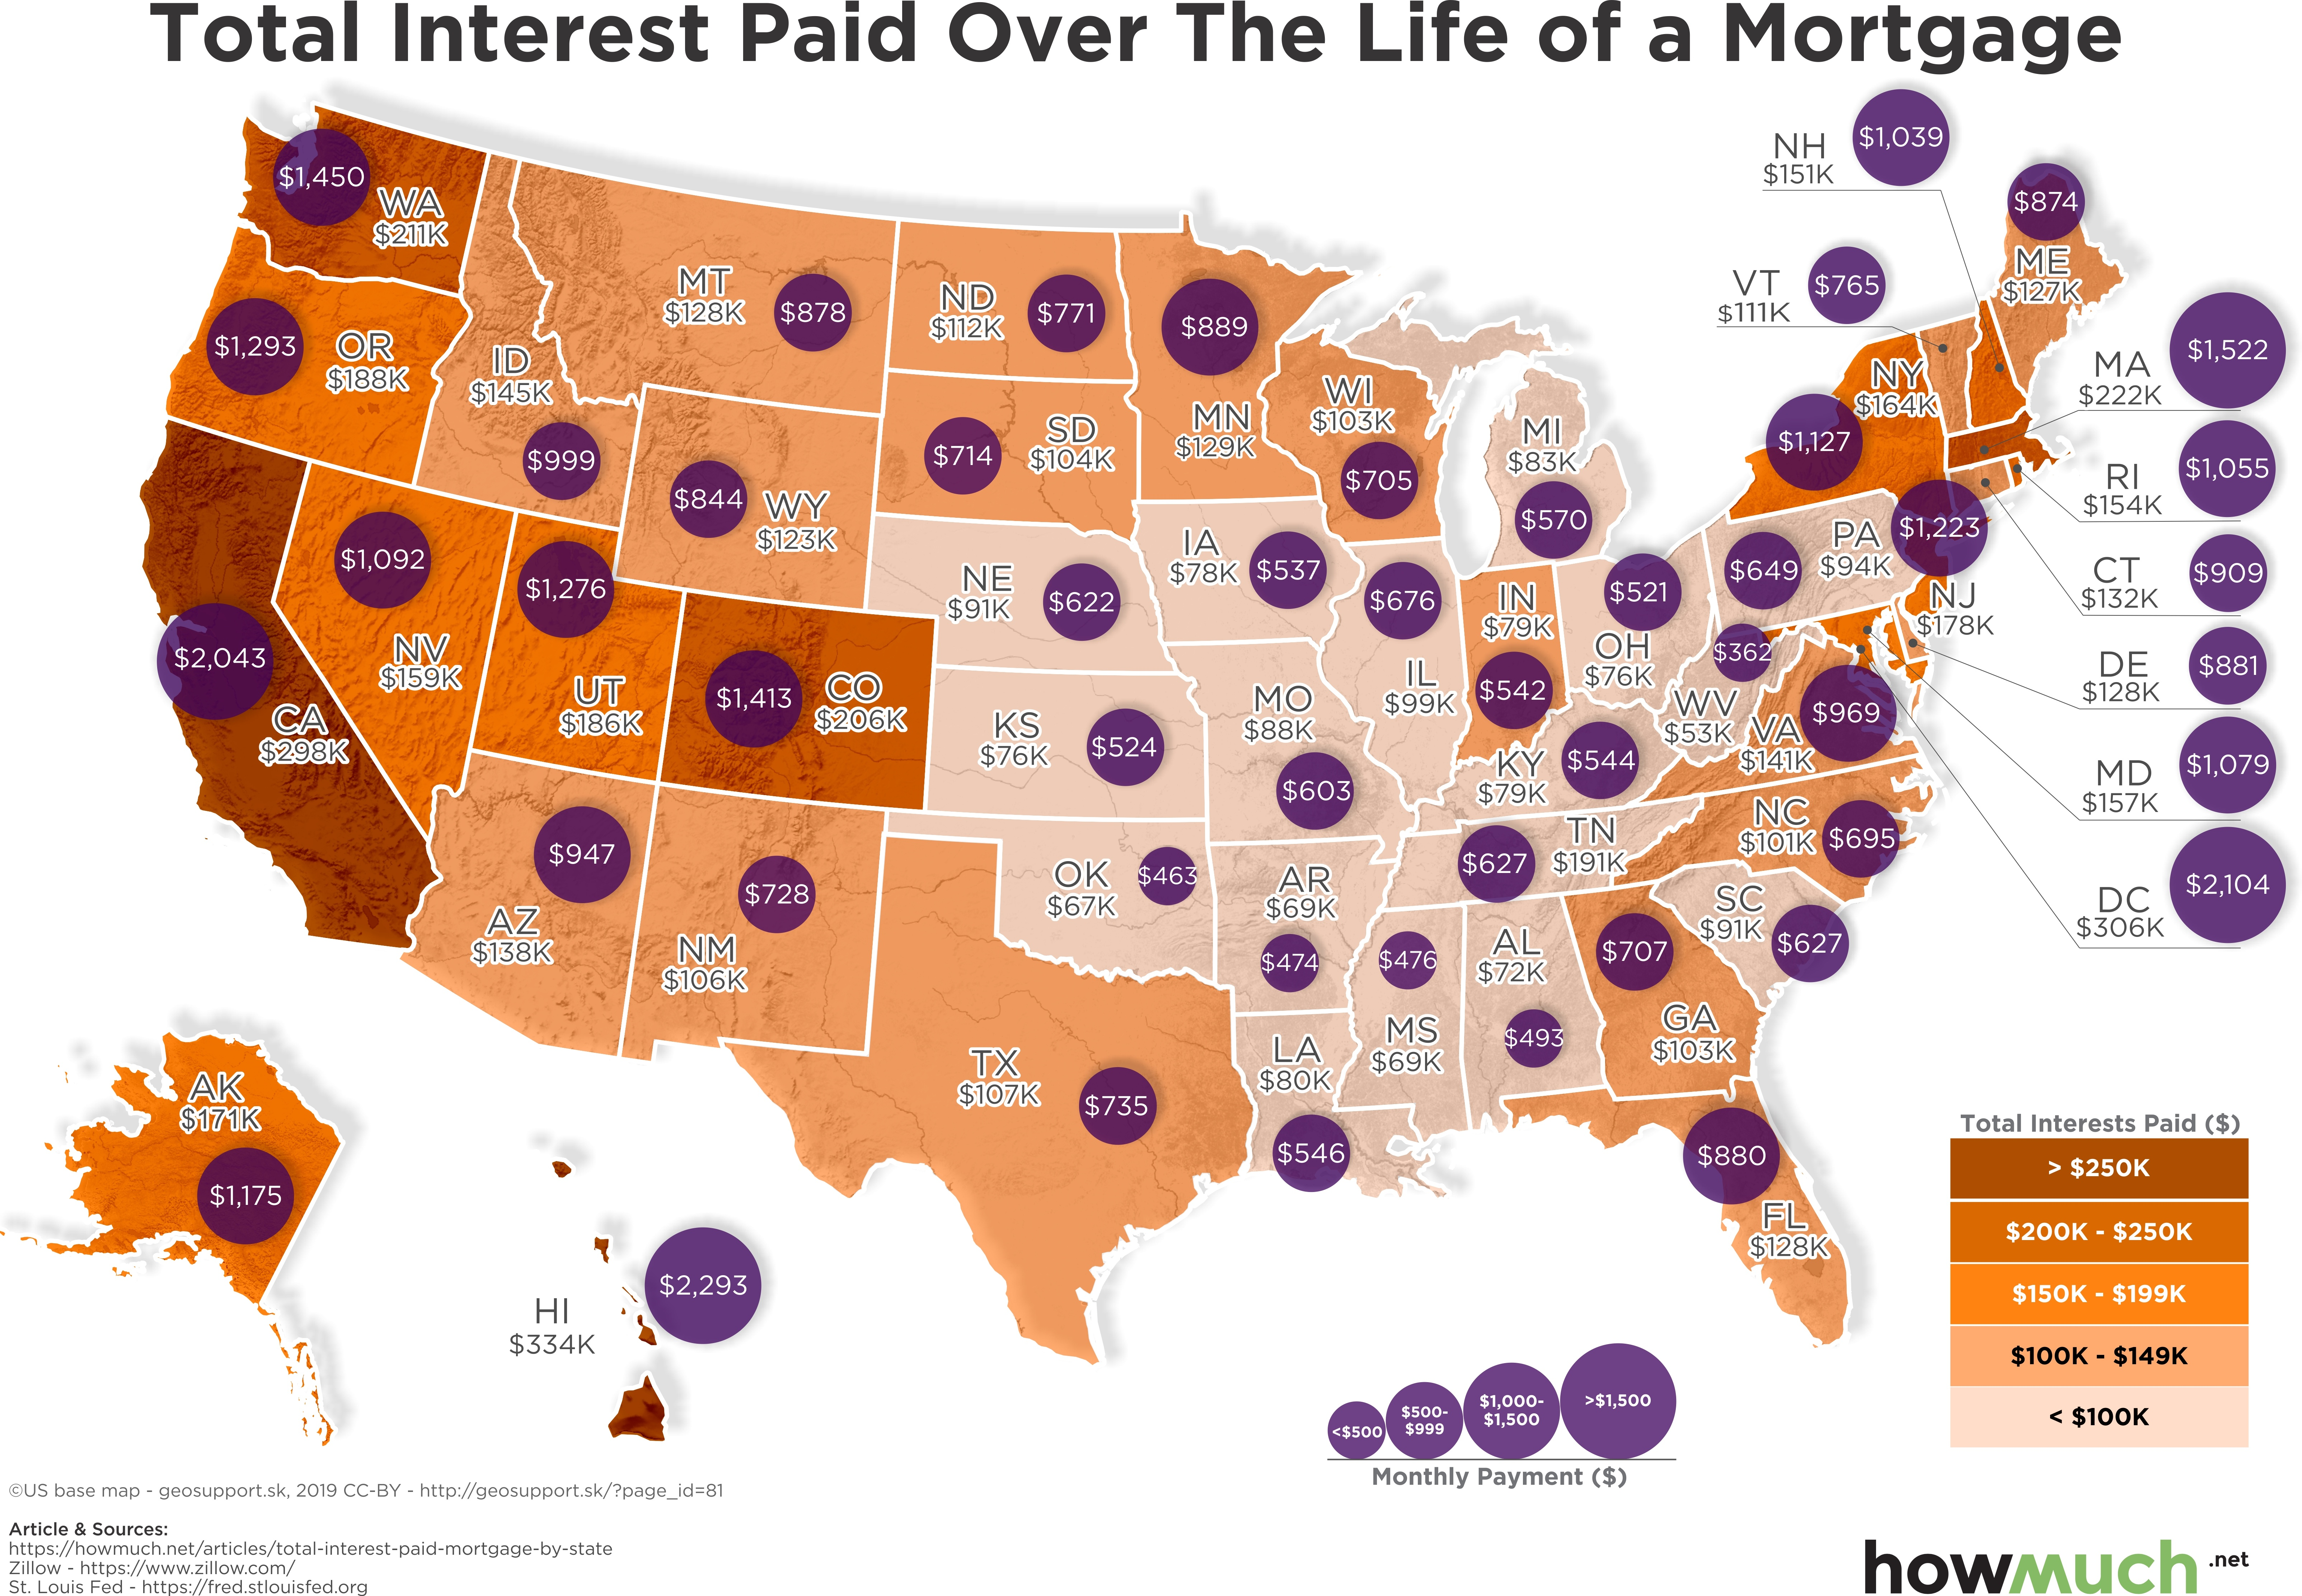 Total Interest Paid on Mortgage